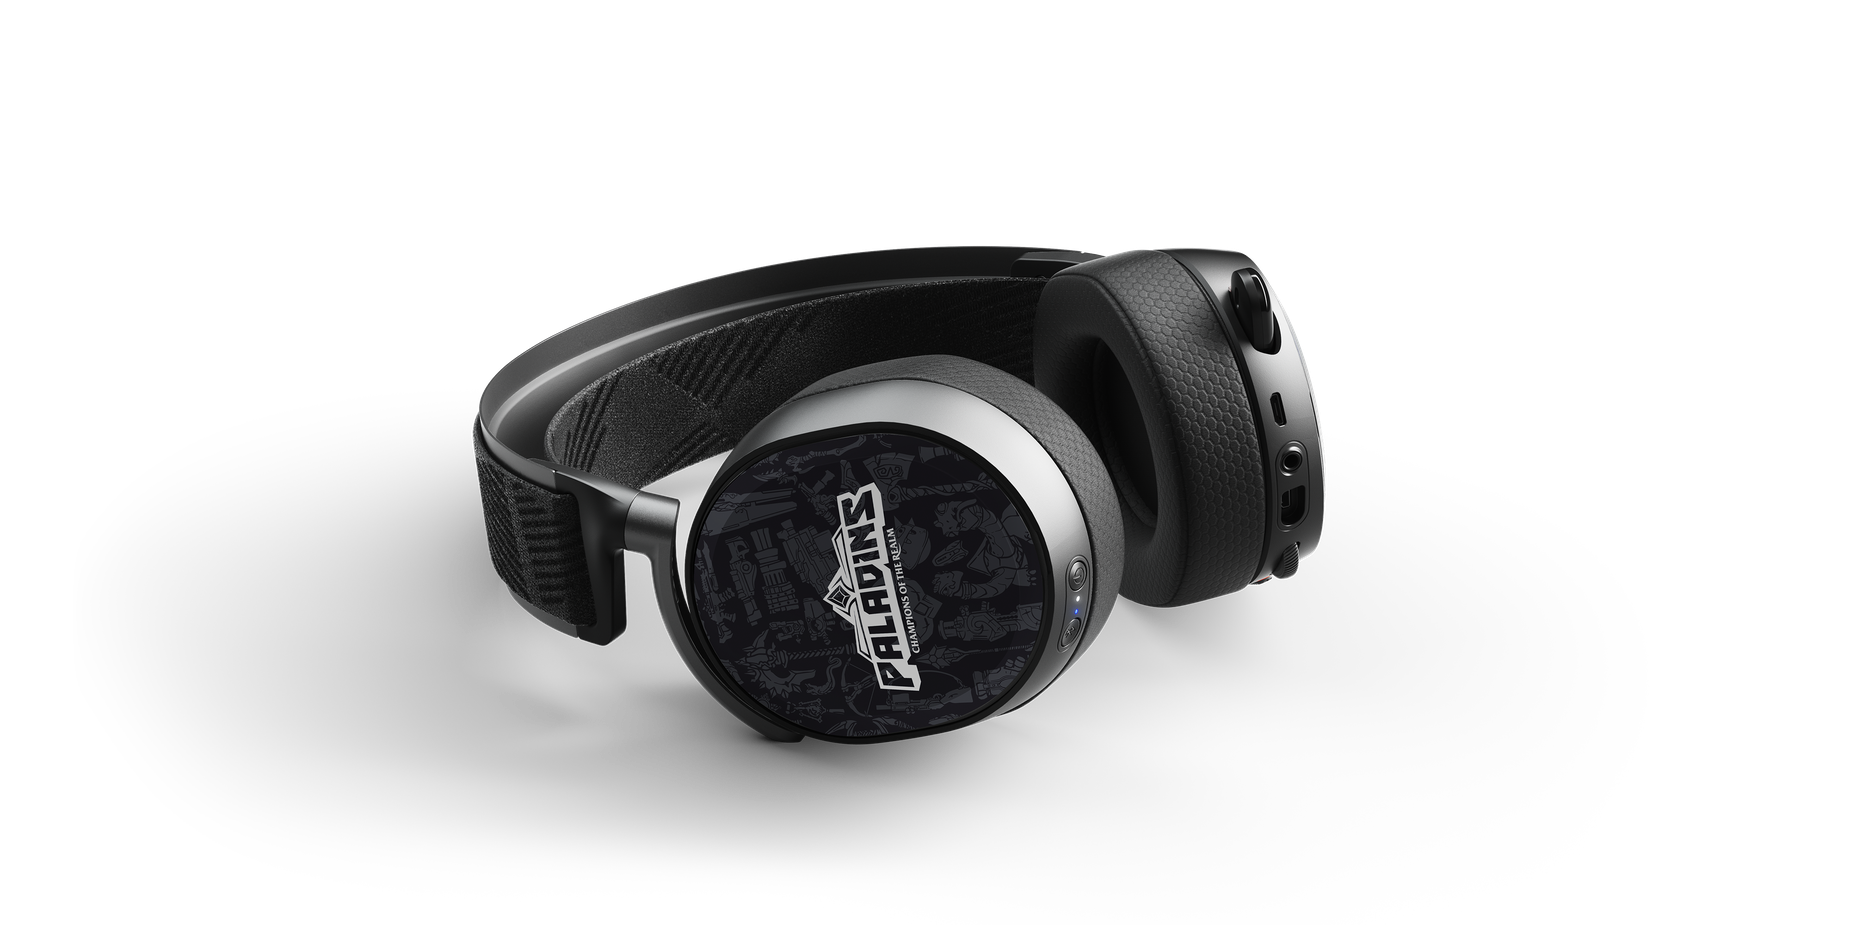 Arctis Pro headset render laying flat with Paladins speaker plates attached